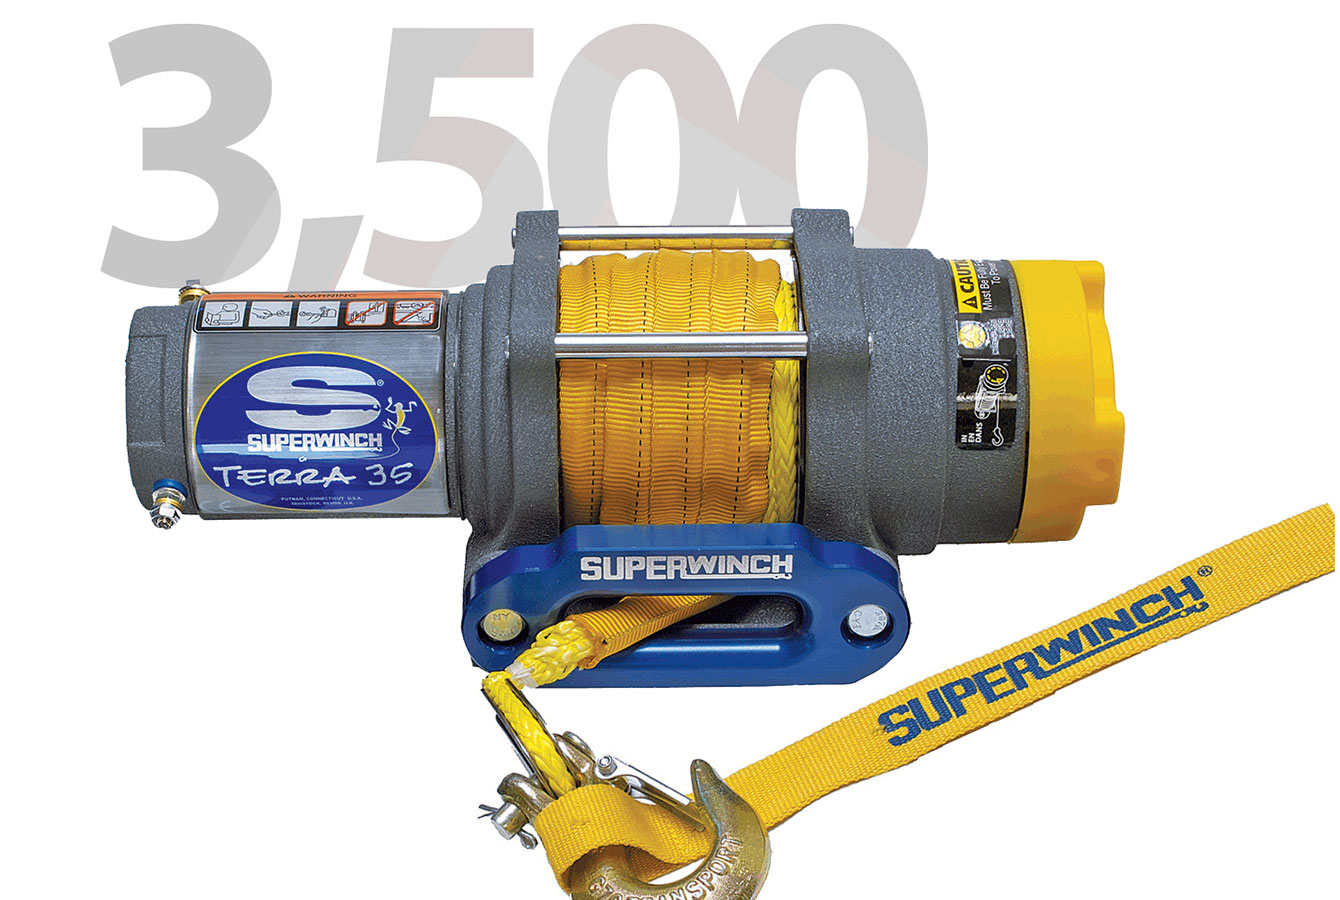 TERRA 3500LB SYNTHETIC ROPE